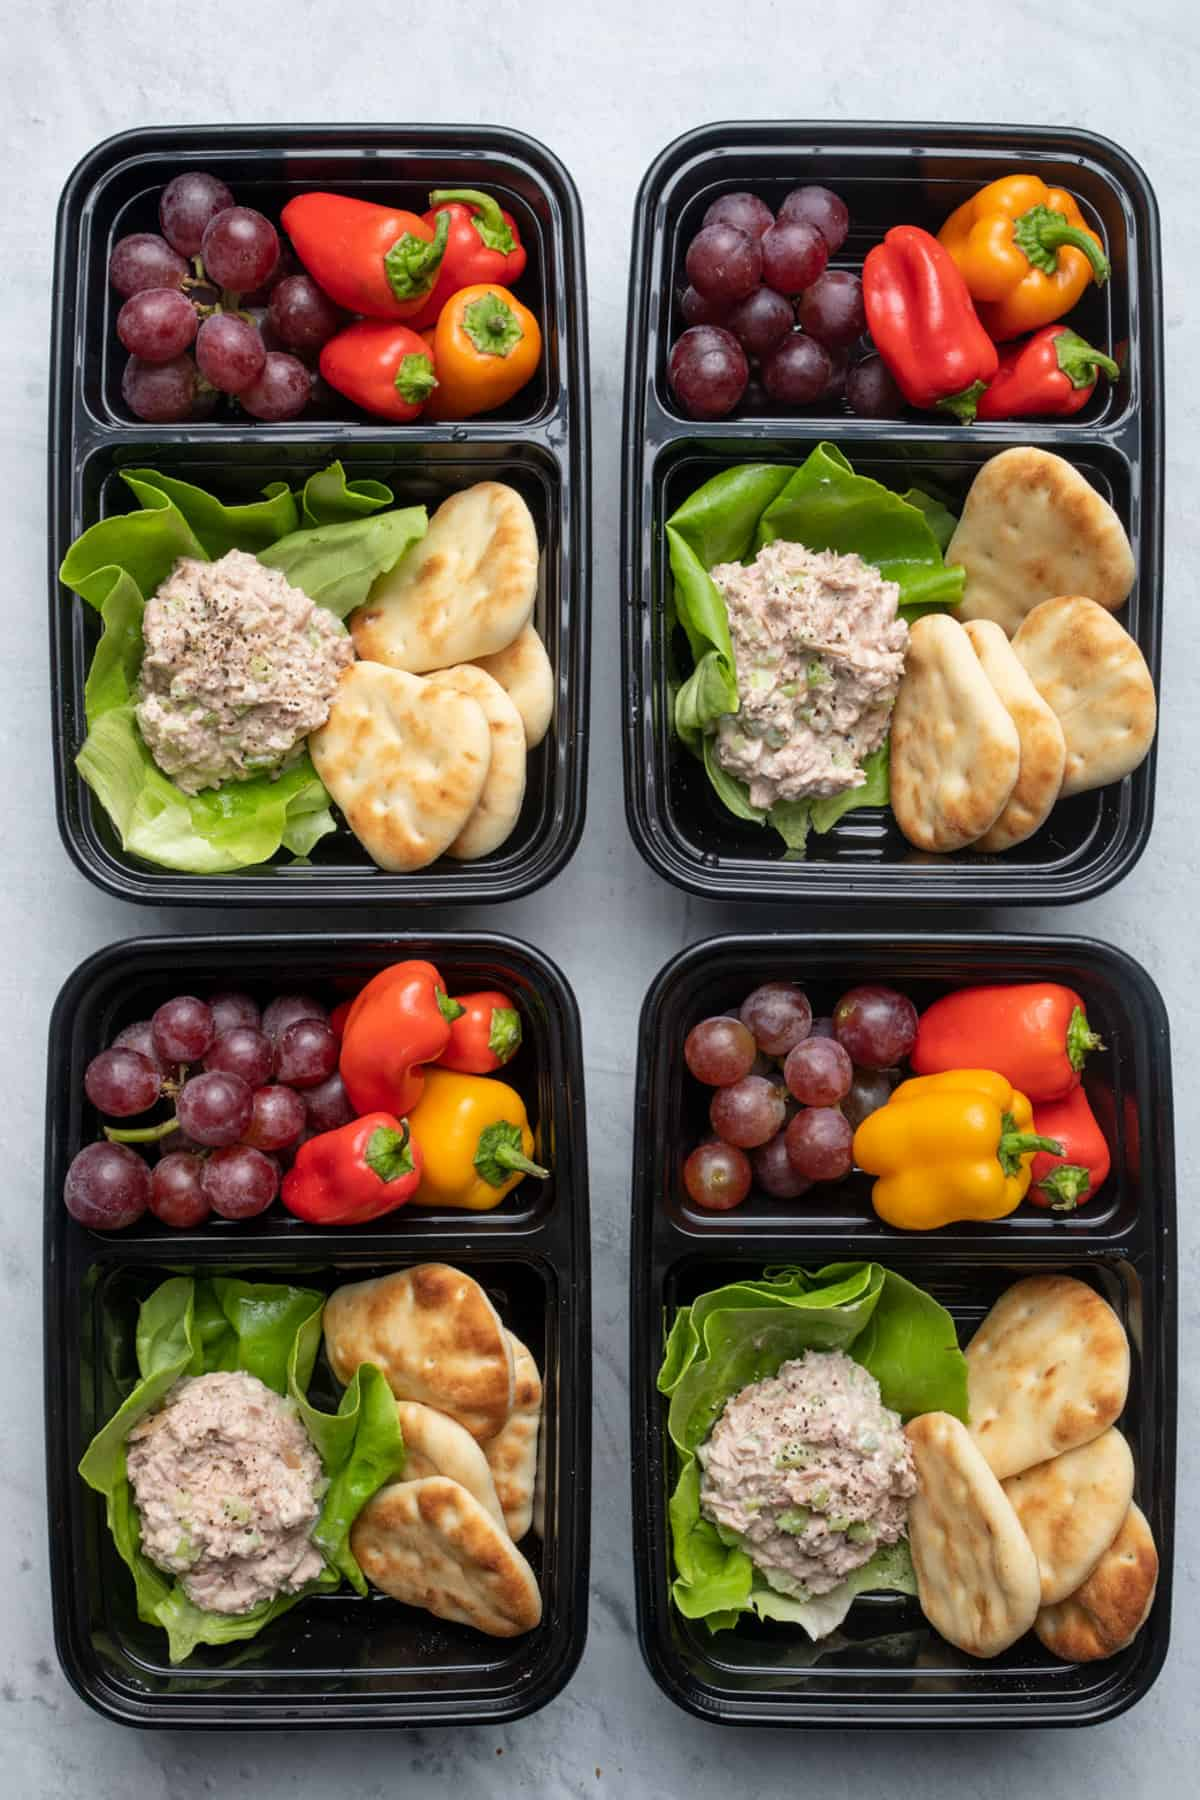 Tuna salad meal prep containers